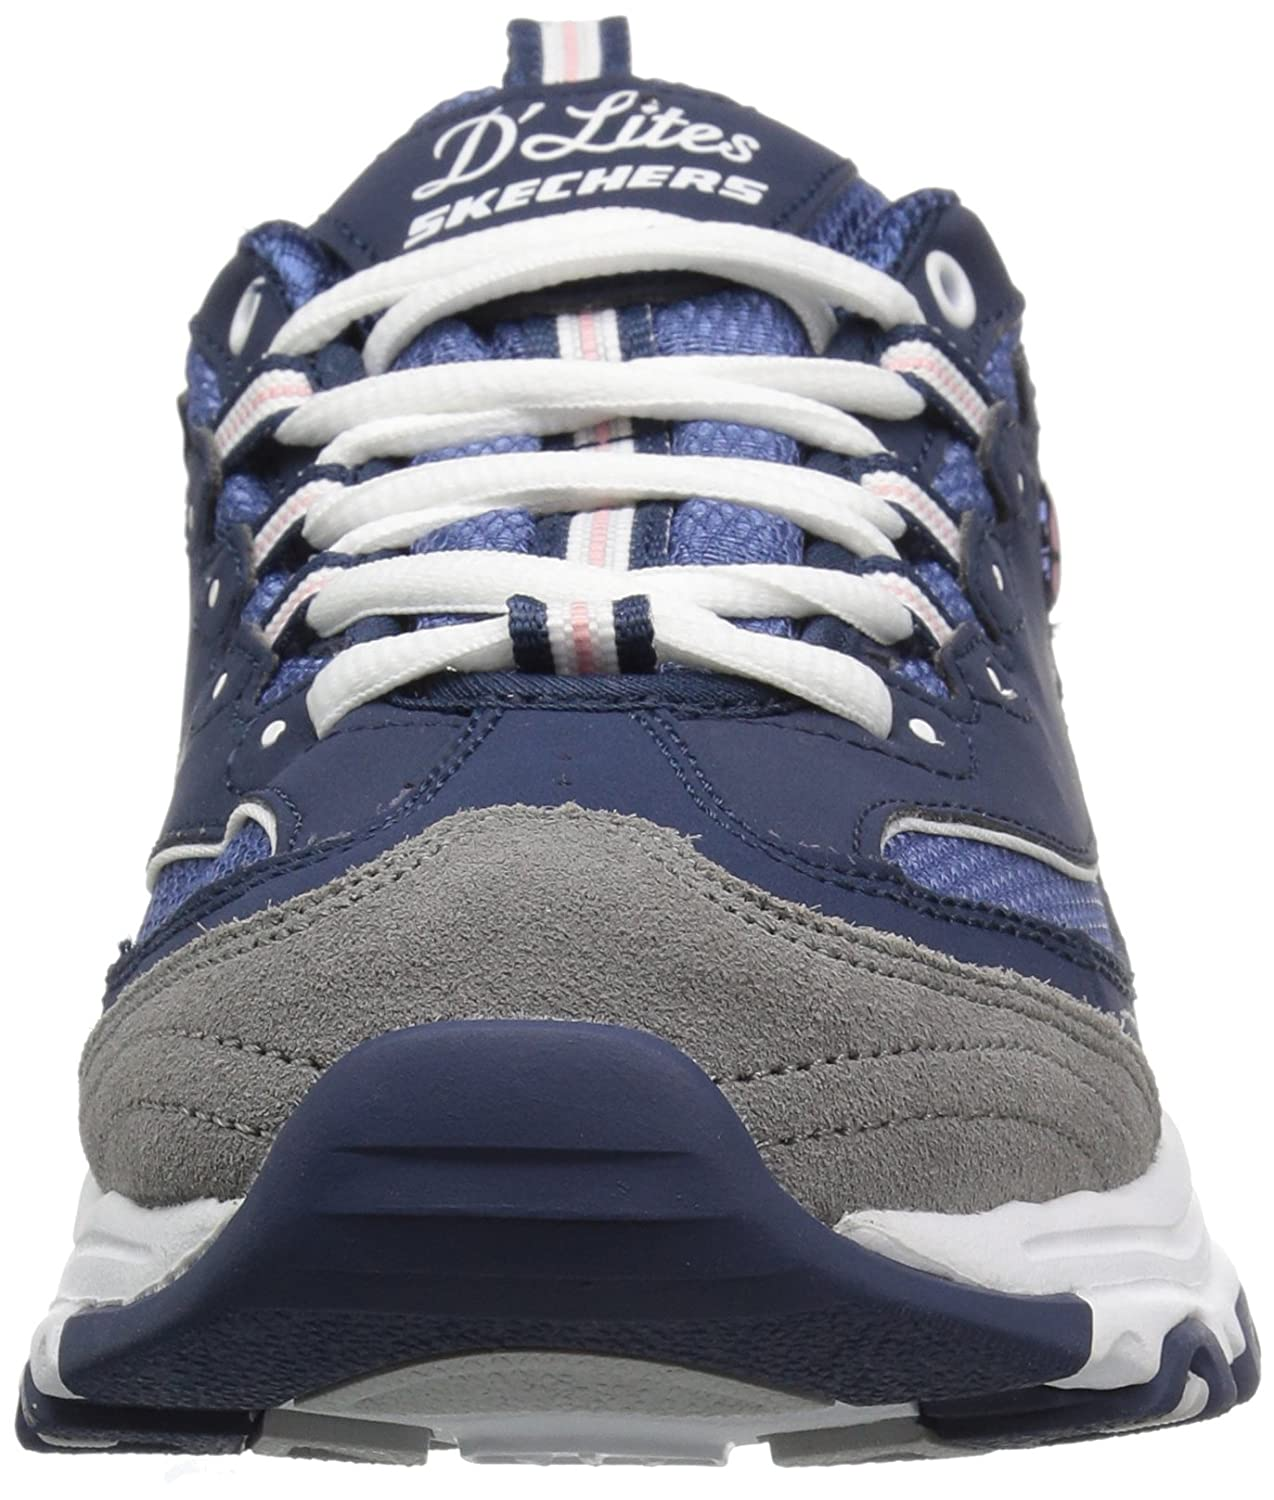 Skechers-D-039-Lites-Women-039-s-Casual-Lightweight-Fashion-Sneakers-Athletic-Shoes thumbnail 142